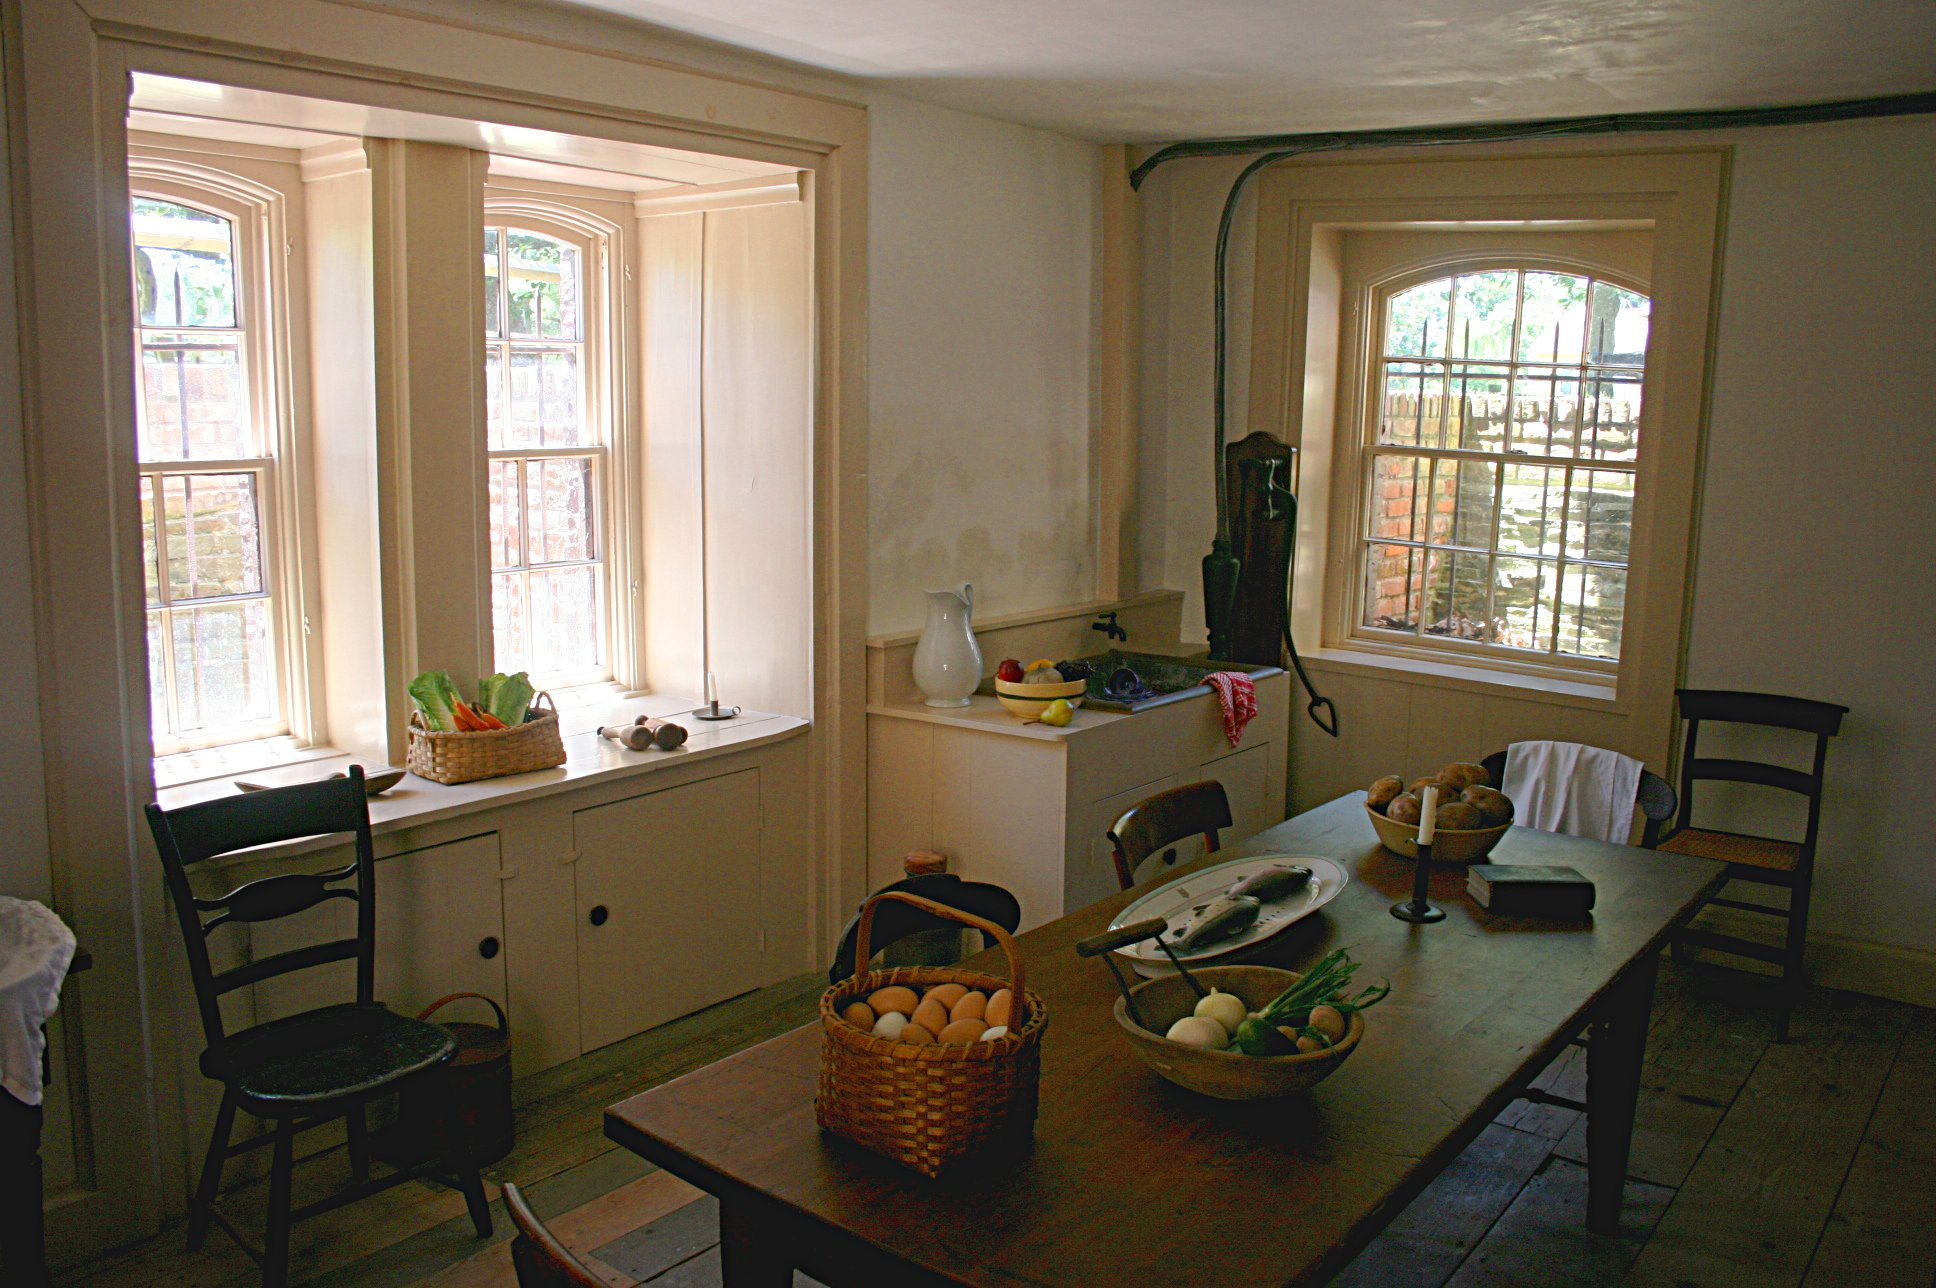 Lindenwald kitchen